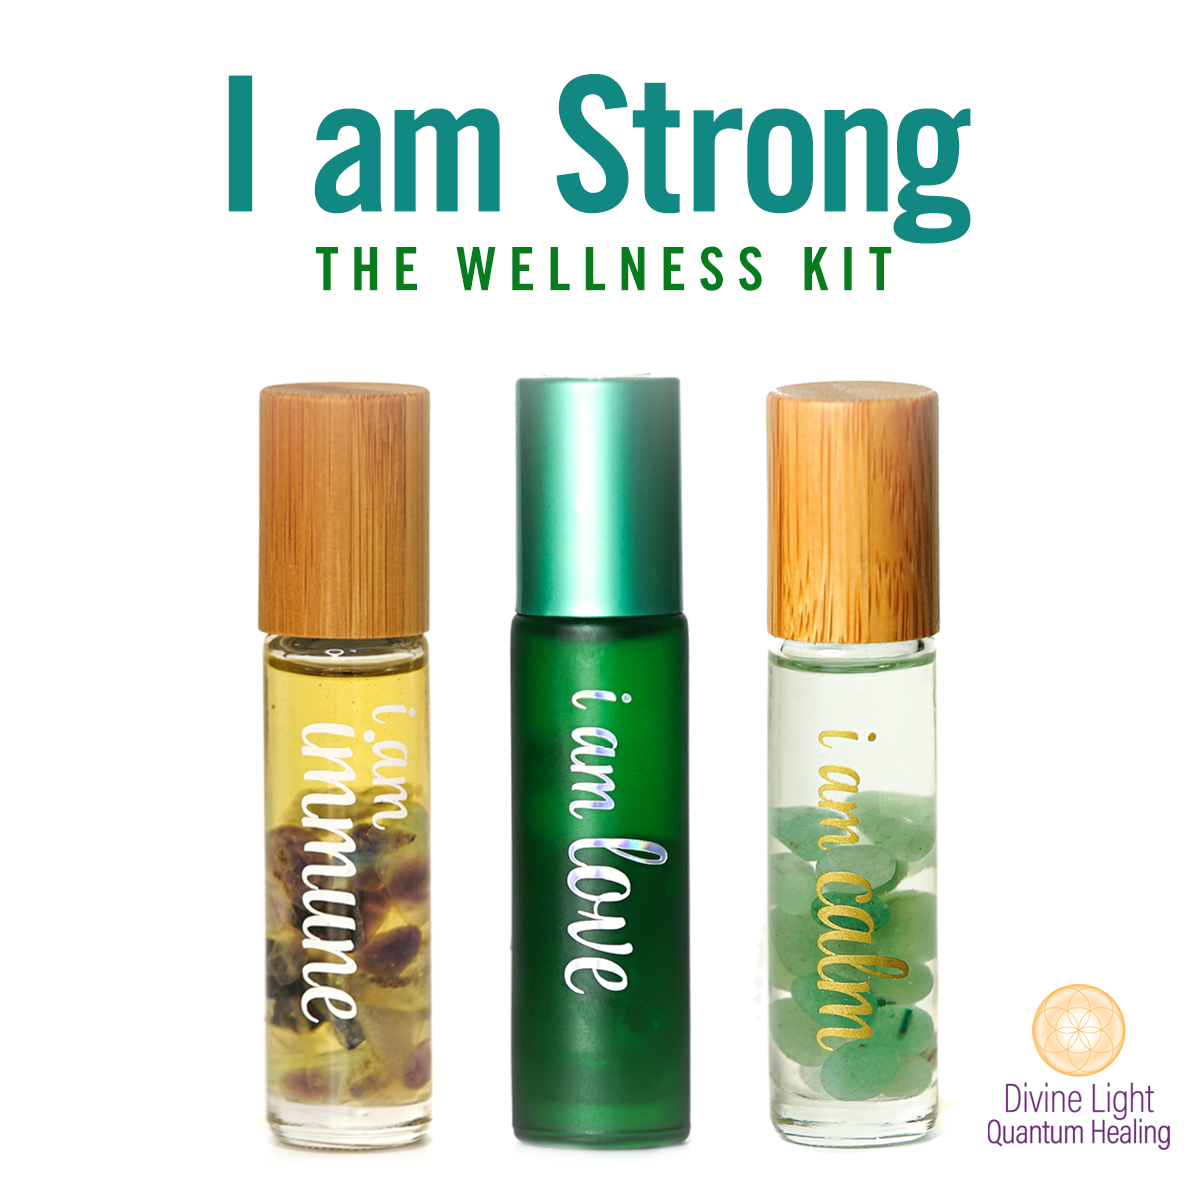 I am Strong: The Wellness Kit